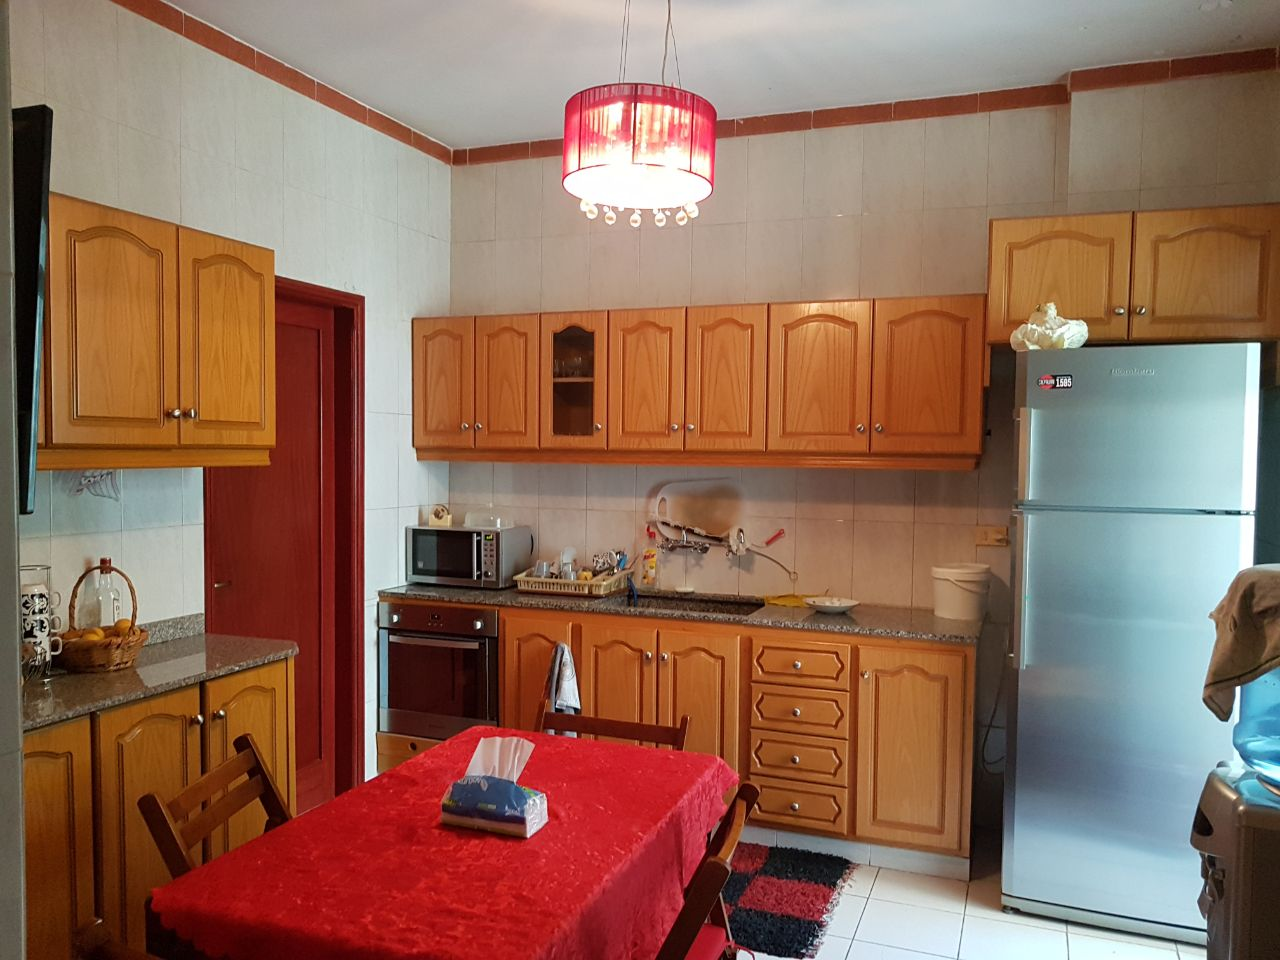 RL-2347 Apartment for Sale in Keserwan , Ballouneh - $ 315,000